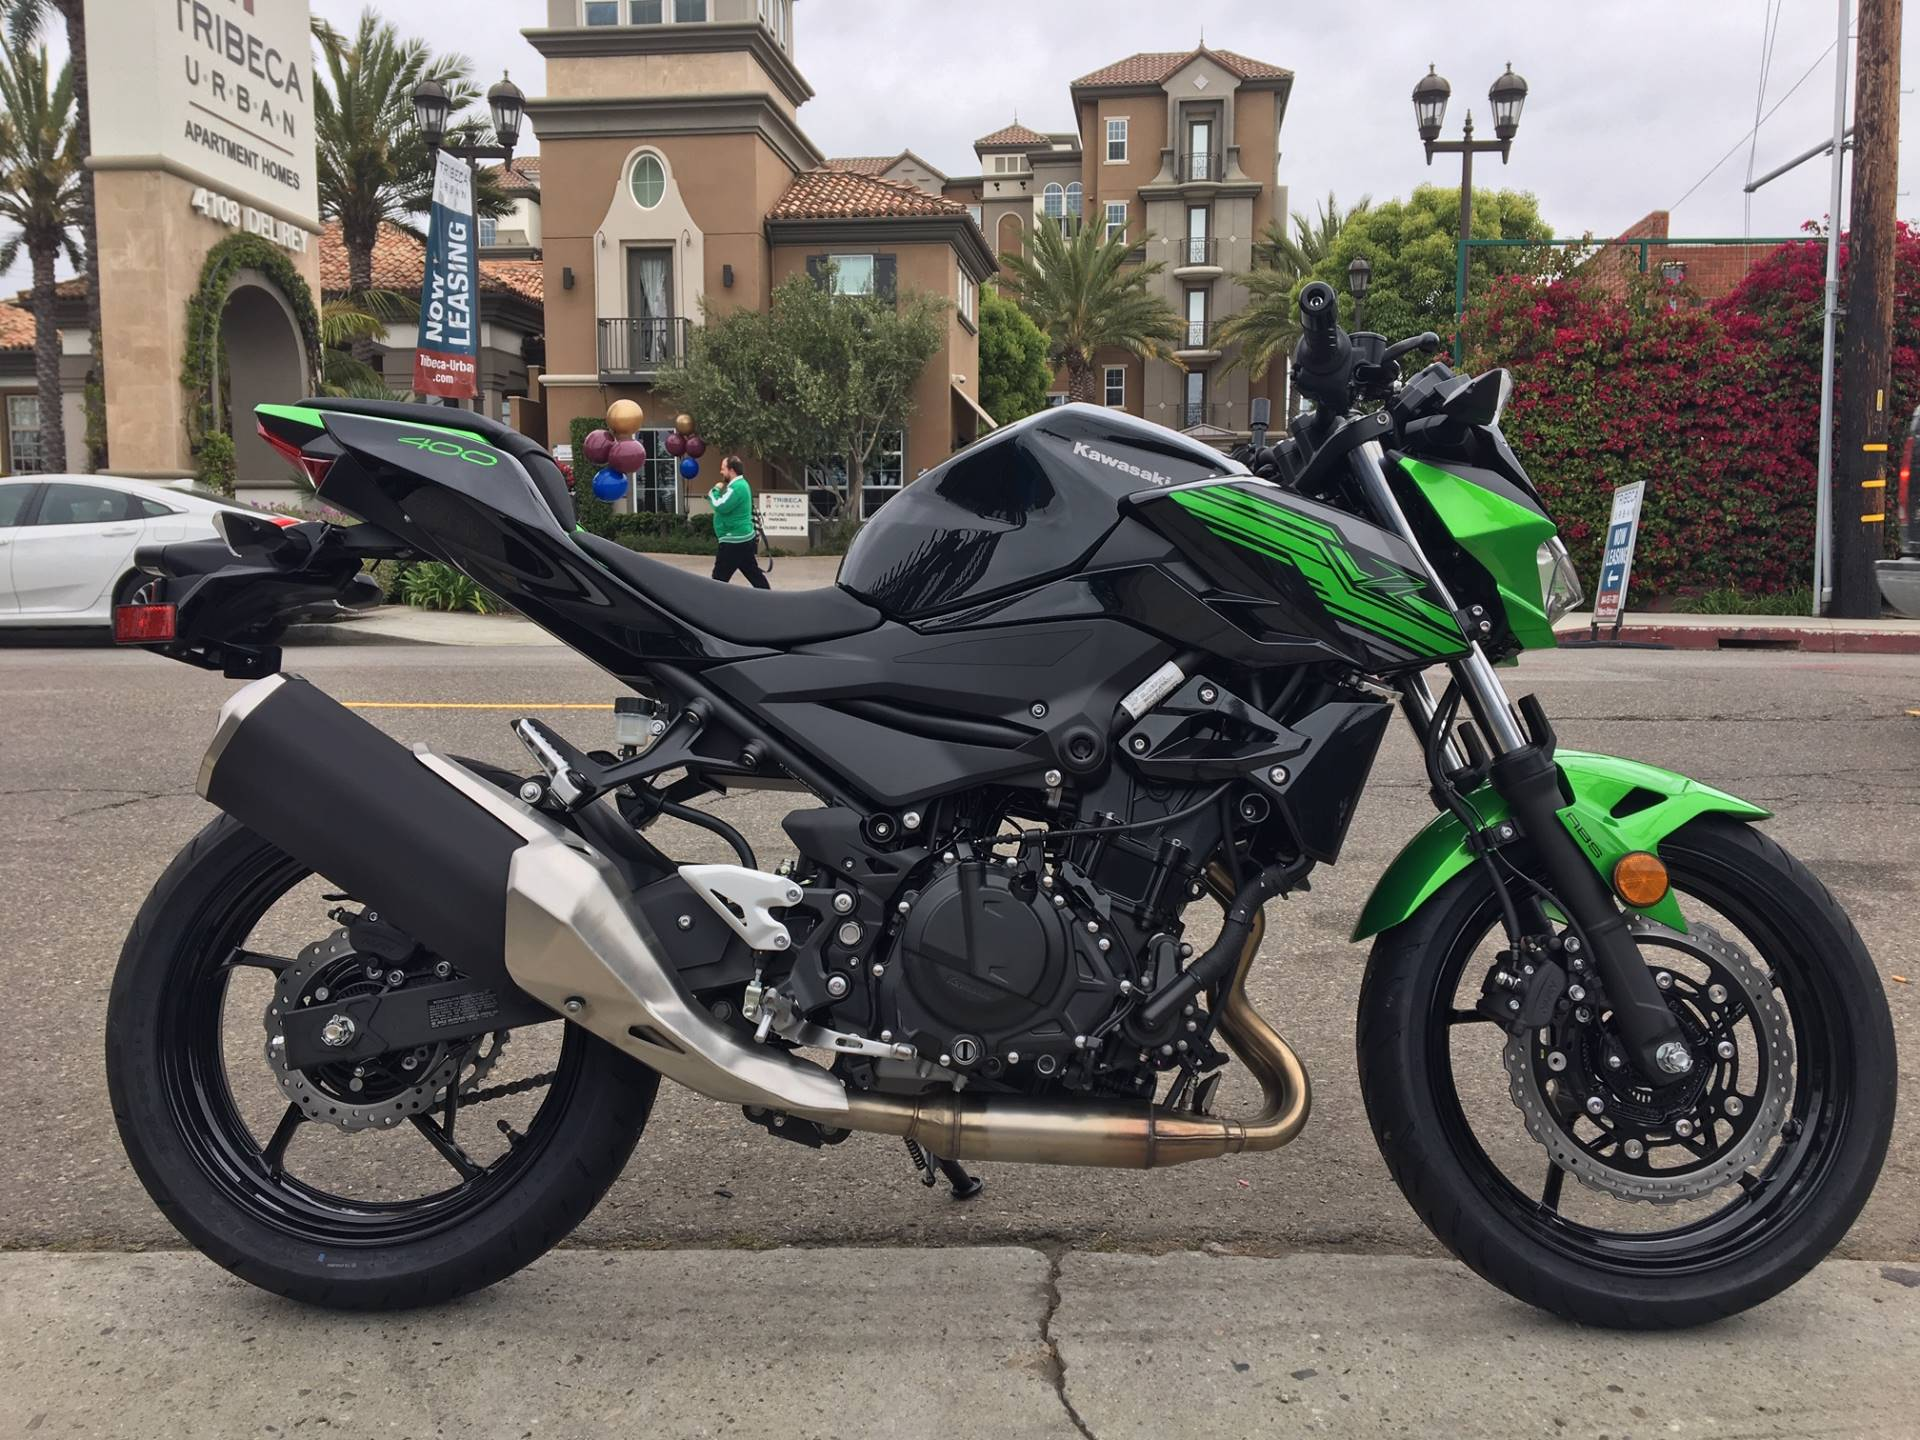 2019 Kawasaki Z400 ABS in Marina Del Rey, California - Photo 1